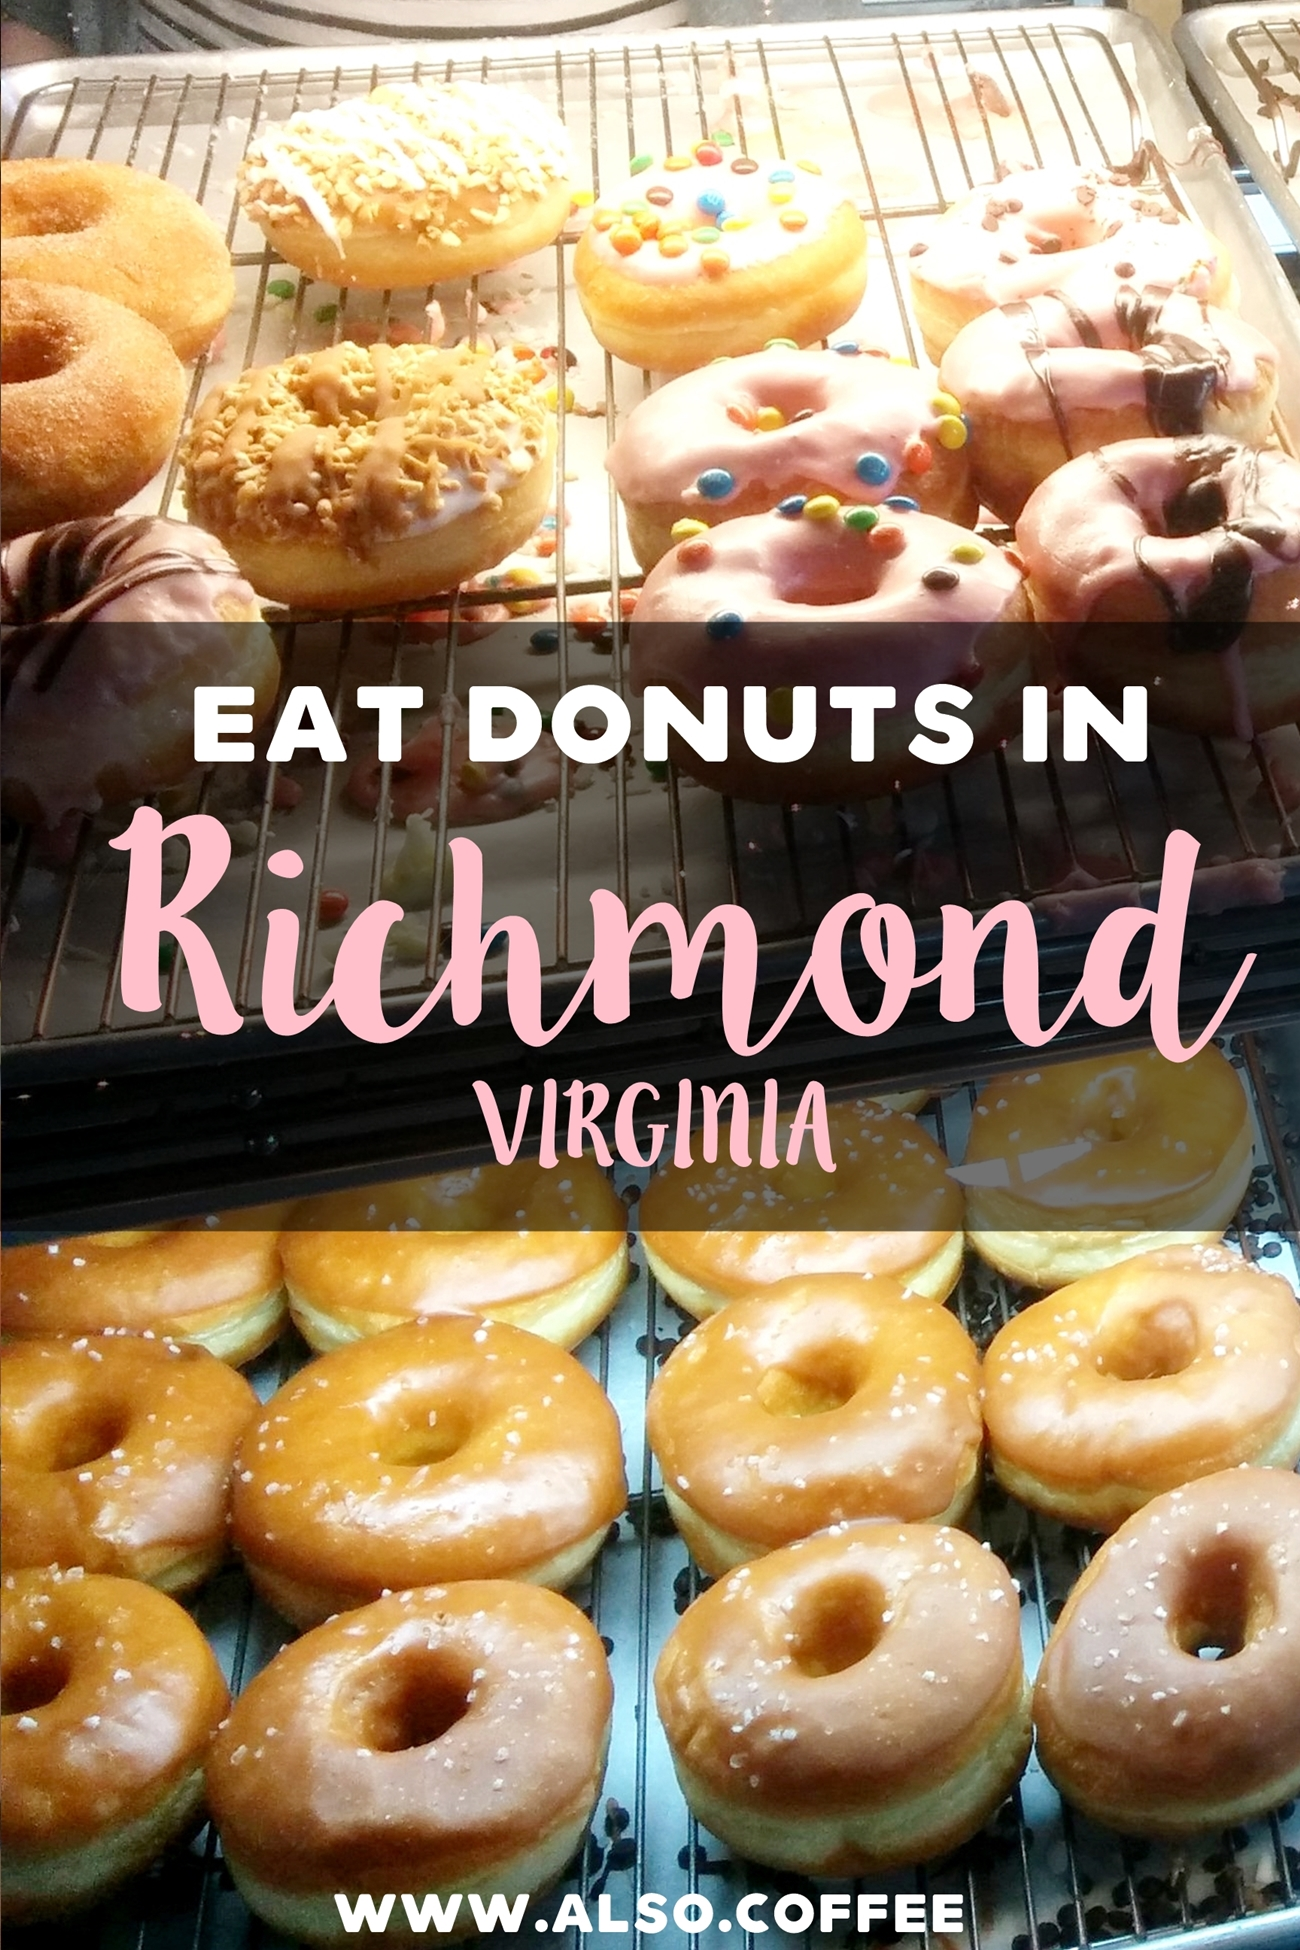 Sugar Shack Donuts in Richmond, VA